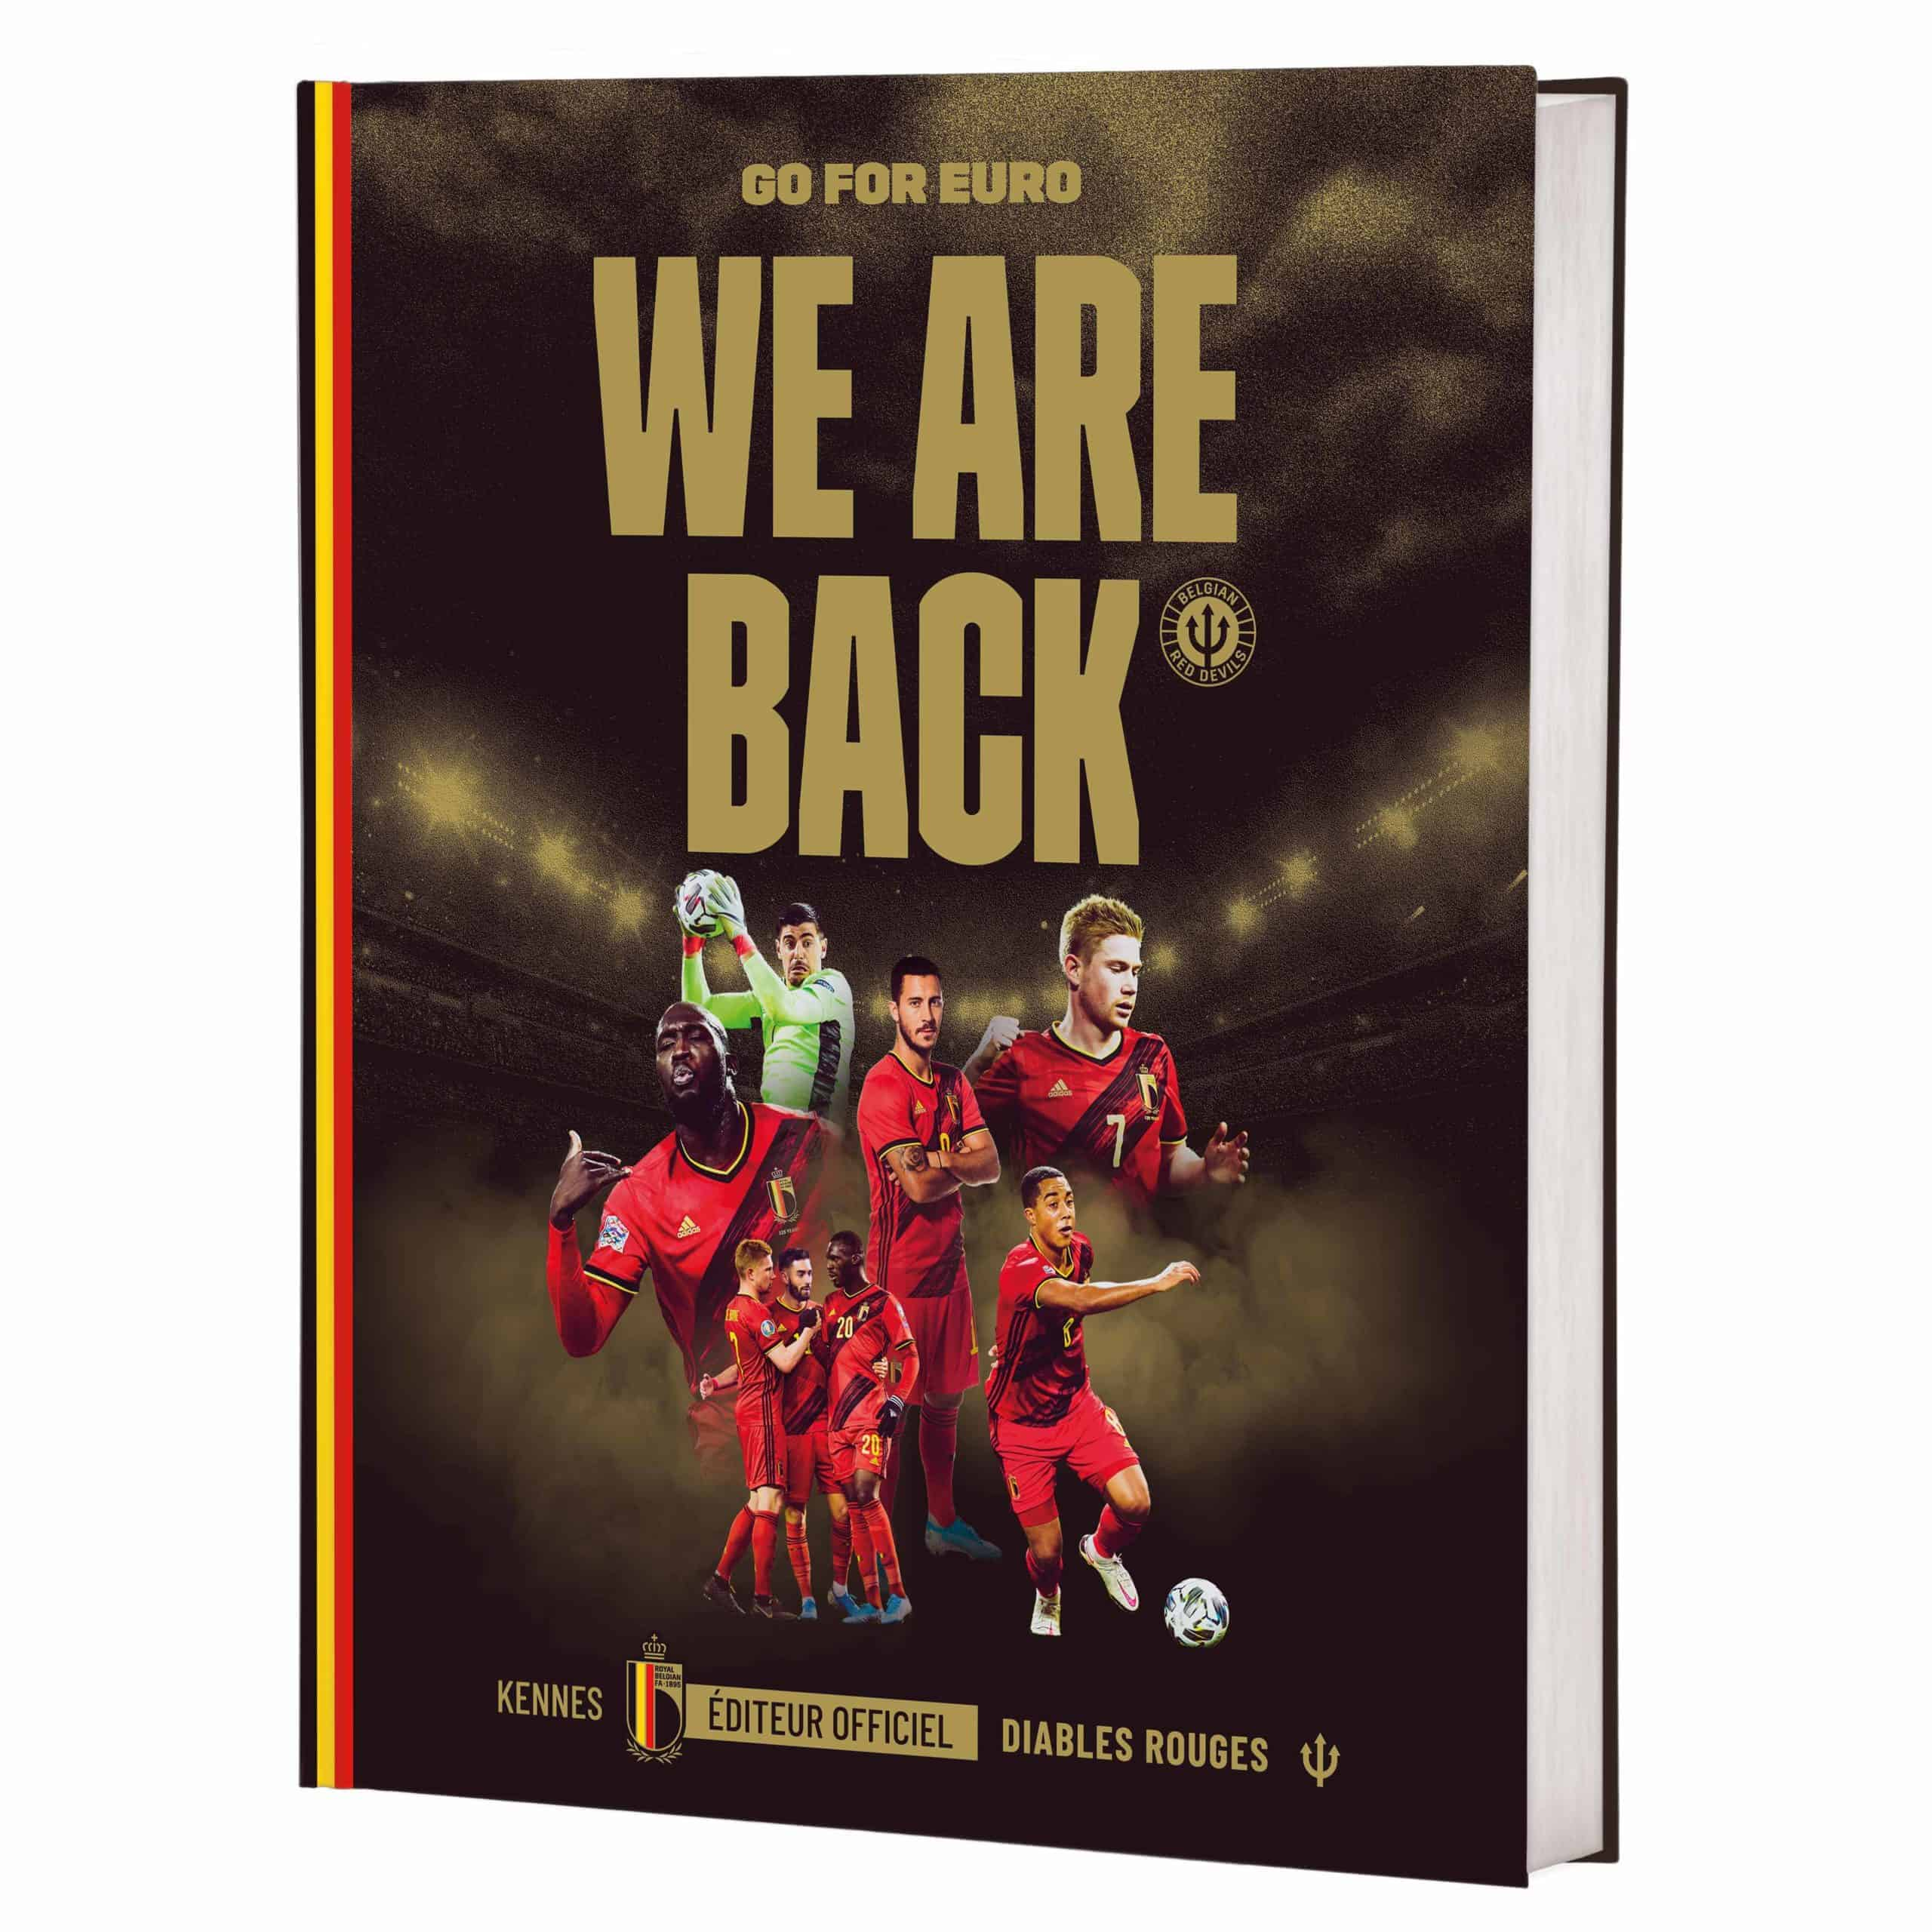 We are back